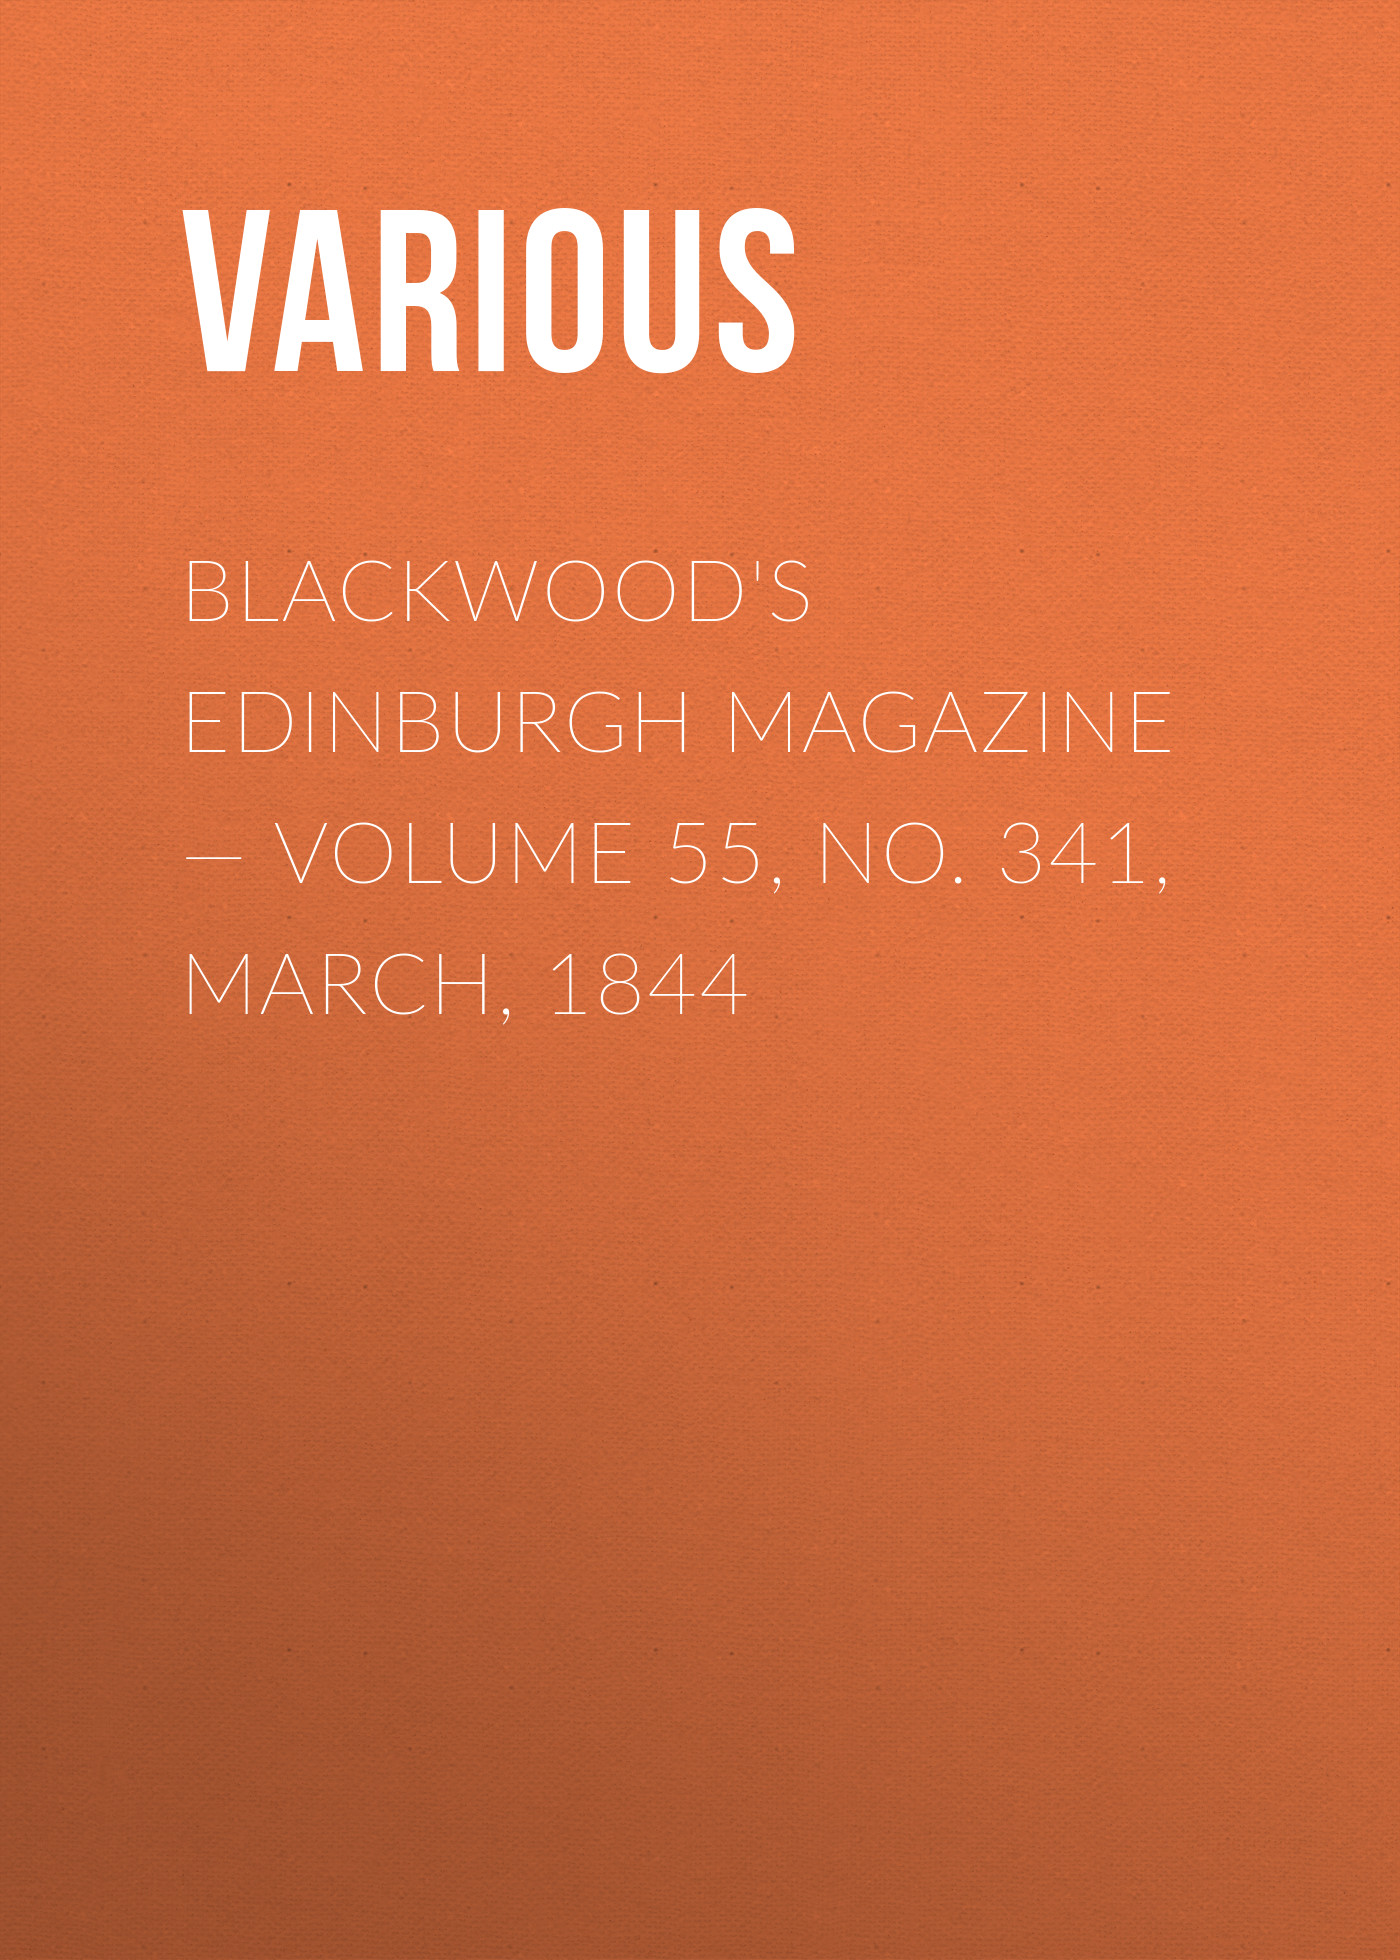 Blackwoods Edinburgh Magazine – Volume 55, No. 341, March, 1844